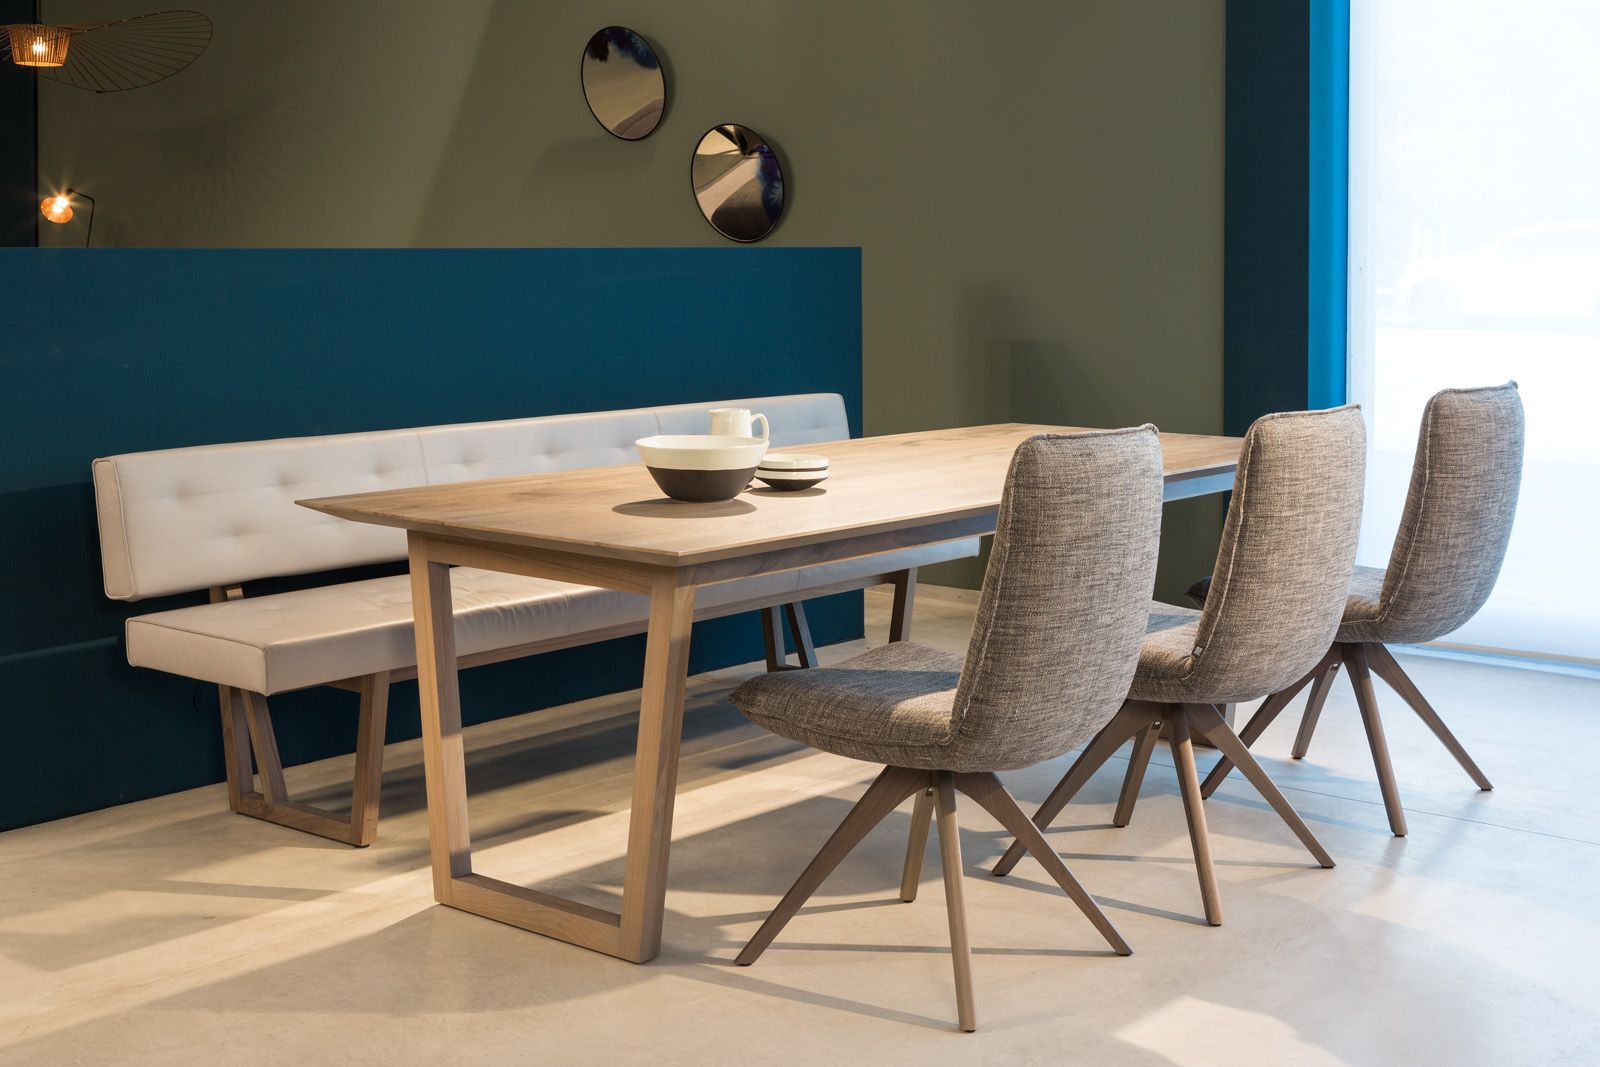 Esszimmer Rolf Benz The Rolf Benz 924 Dining Table Adds Excitement To Any Dining Room